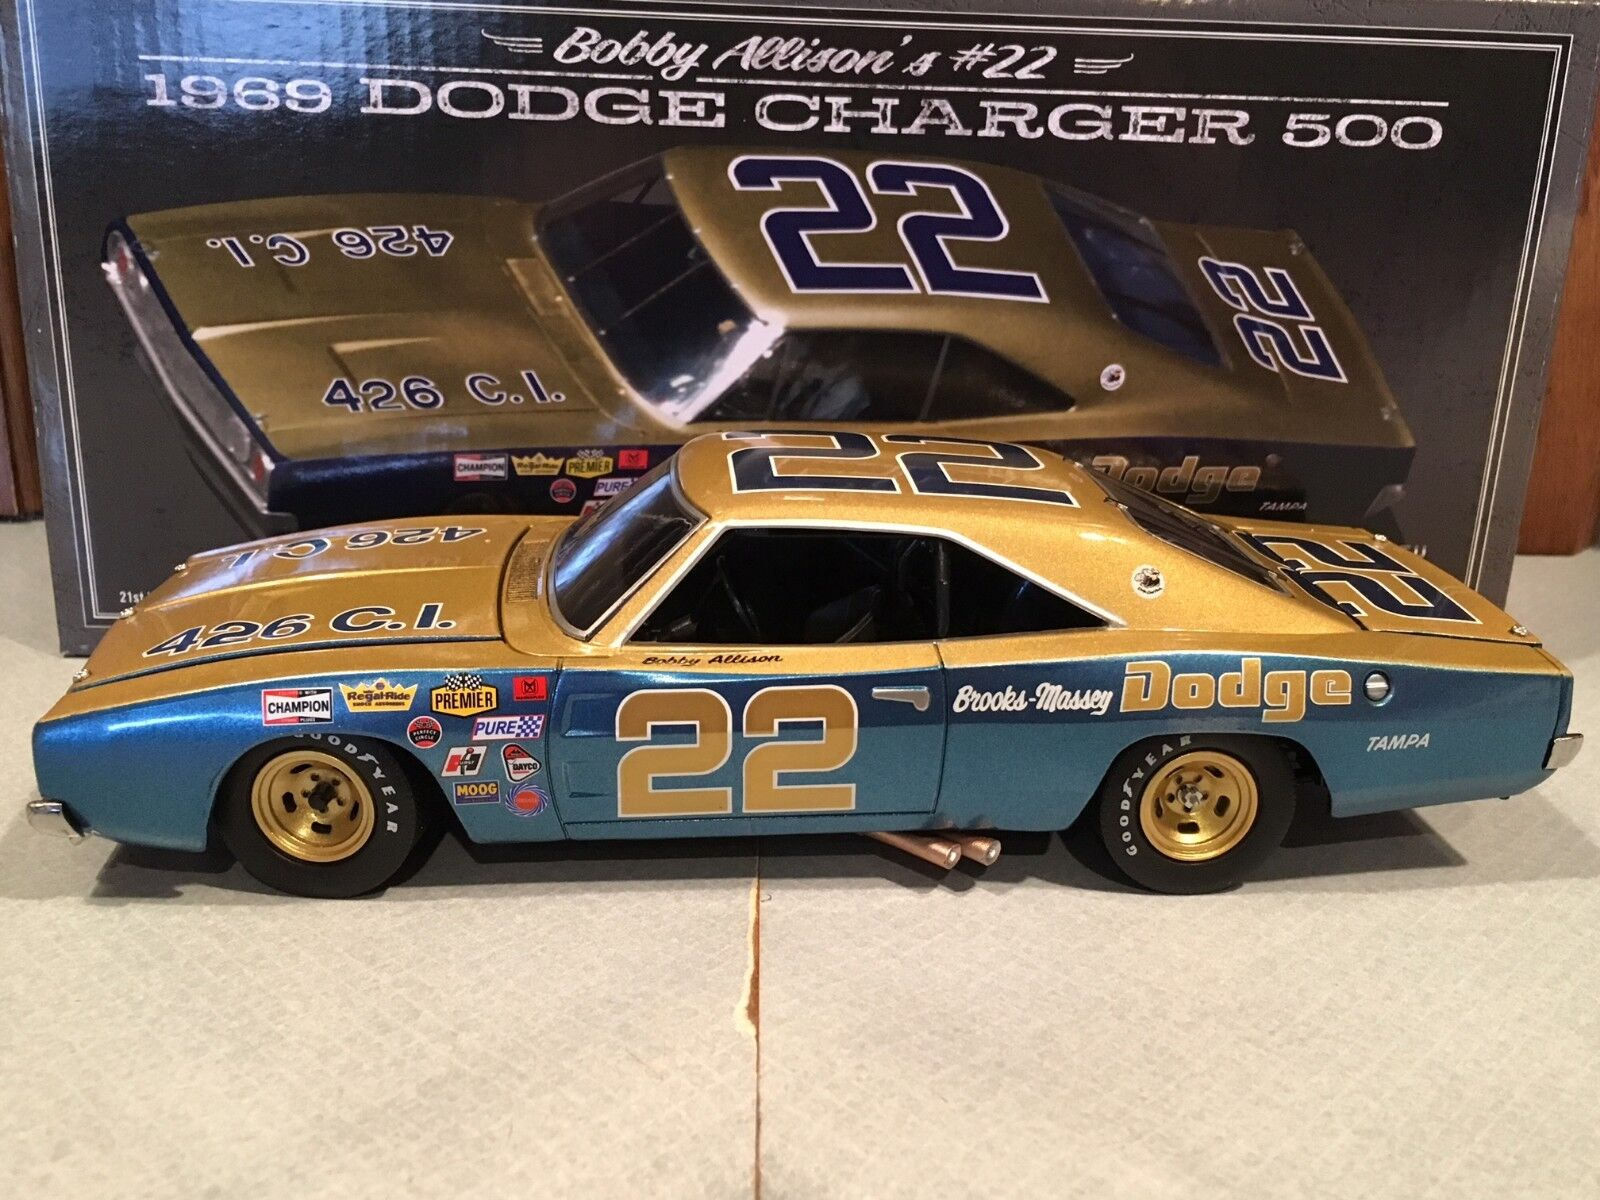 University of Racing 1969 Bobby Allison  22 Dodge Chargeur  500 1 24  confortable